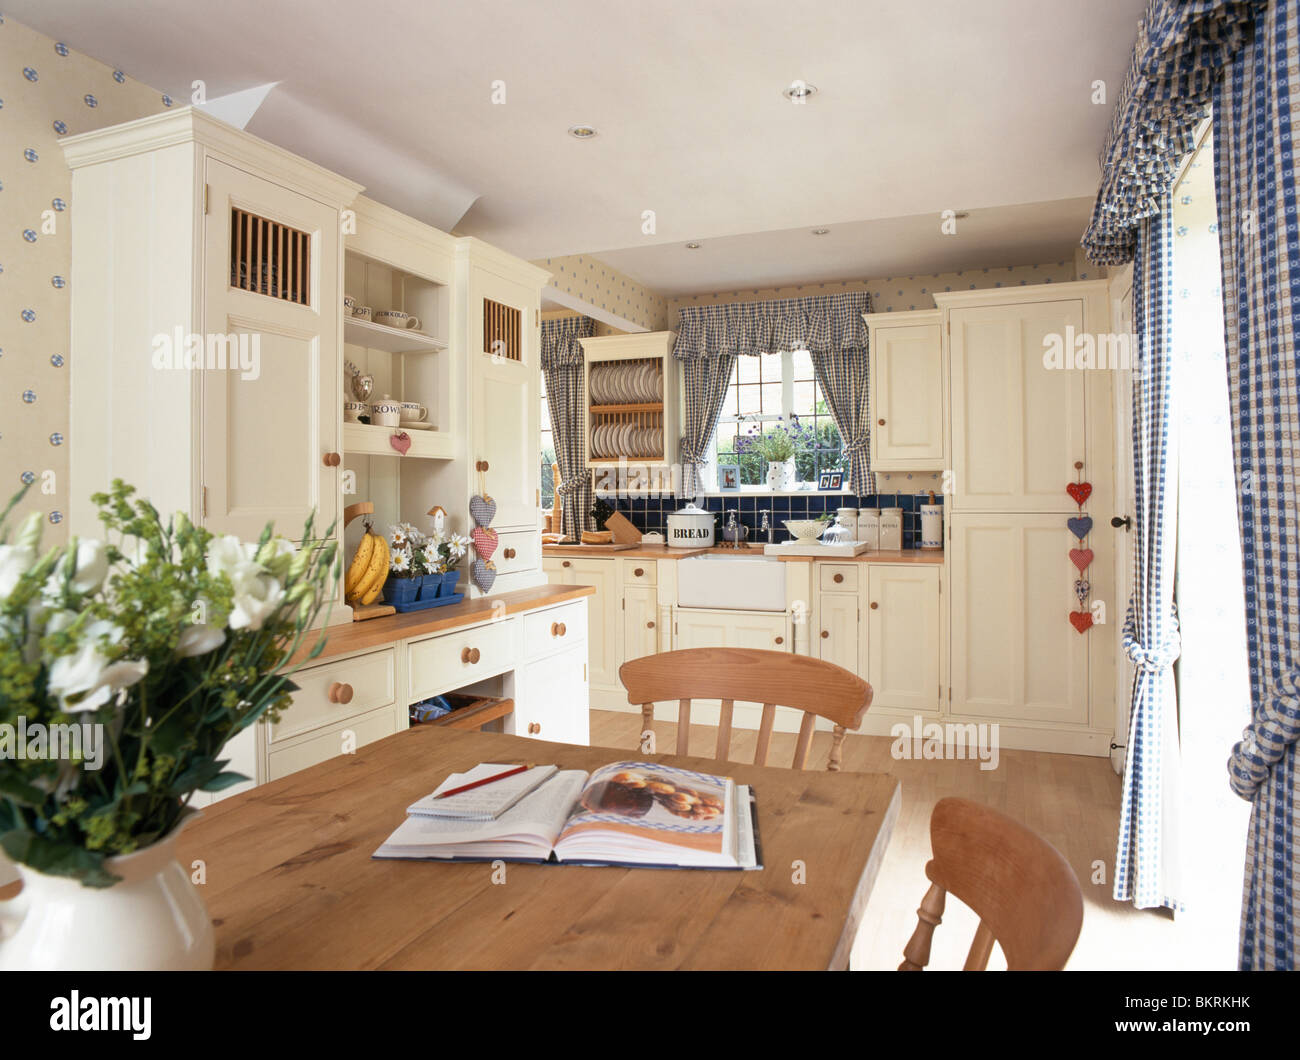 cream fitted units in country stockfotos cream fitted units in country bilder alamy. Black Bedroom Furniture Sets. Home Design Ideas